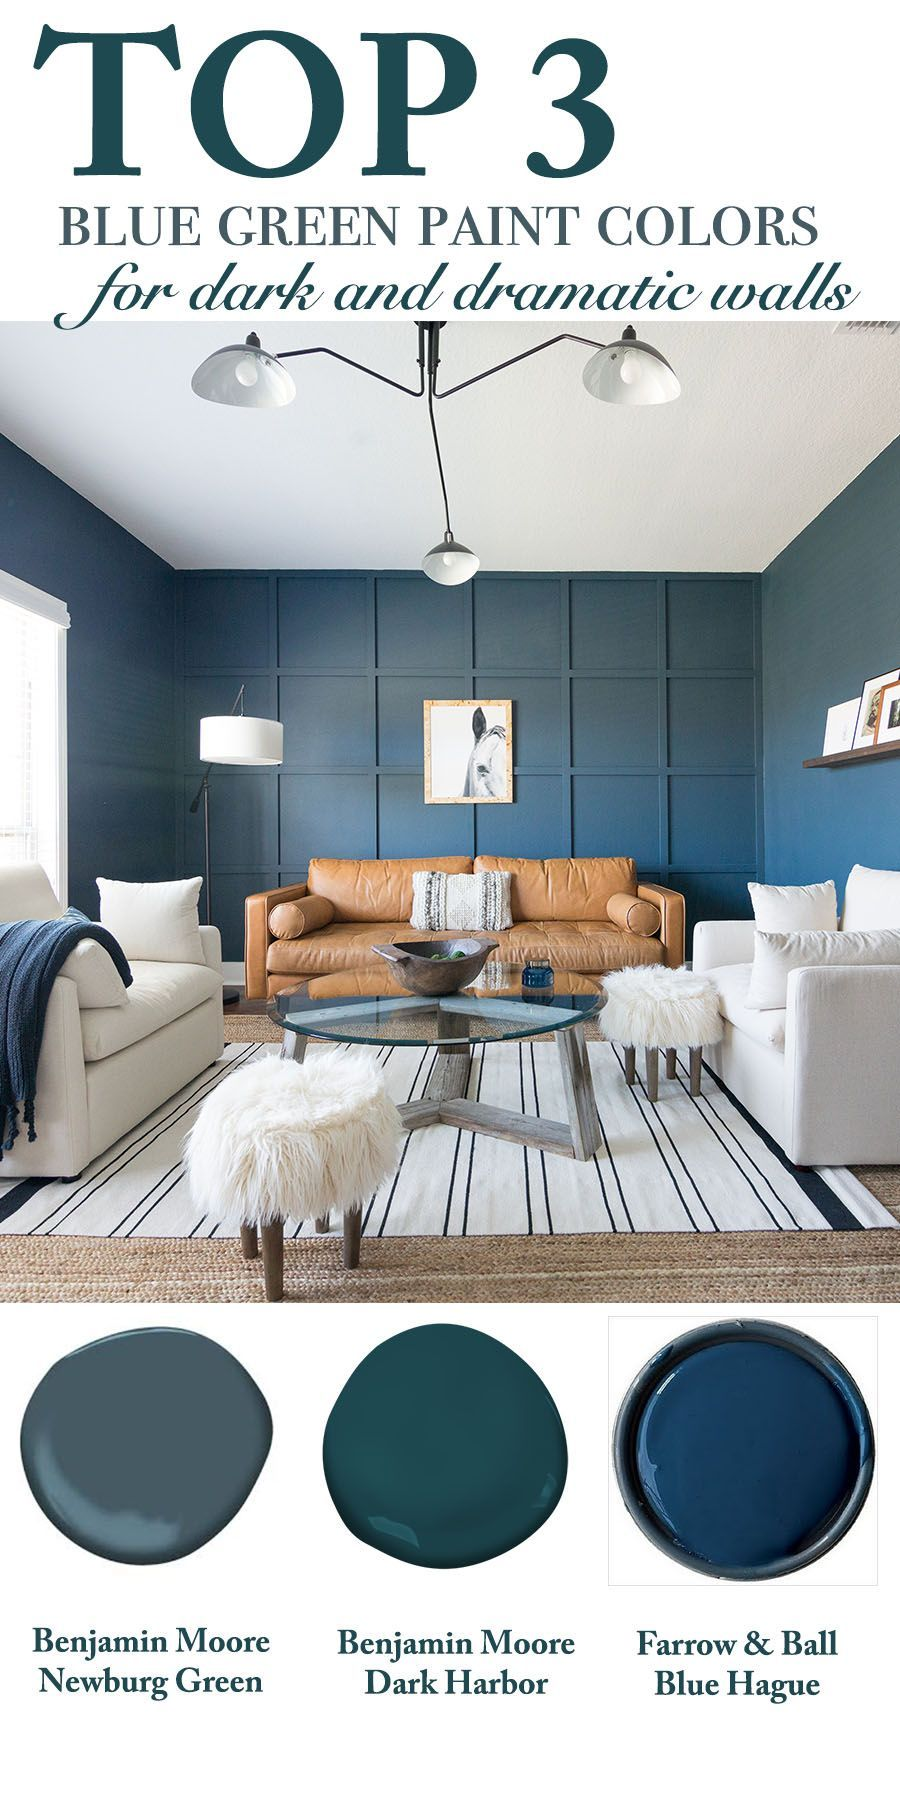 Top 3 Blue Green Paint Colors For Dark And Dramatic Walls Blue Green Bedrooms Dark Living Rooms Living Room Colors